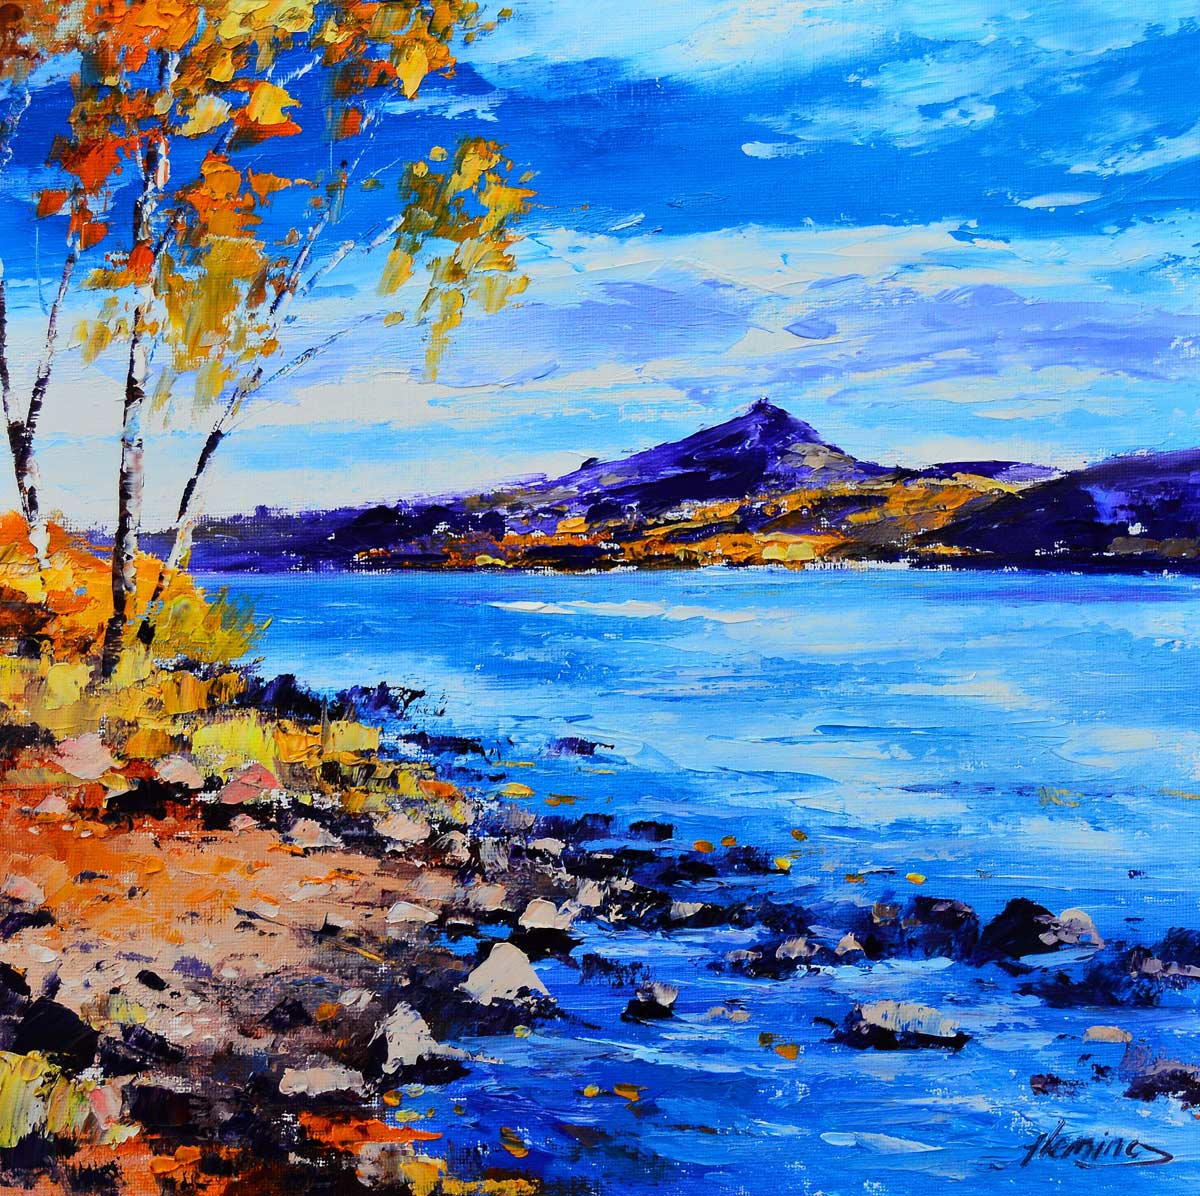 Kevin Fleming - Autumn Schiehallion from Loch Rannoch